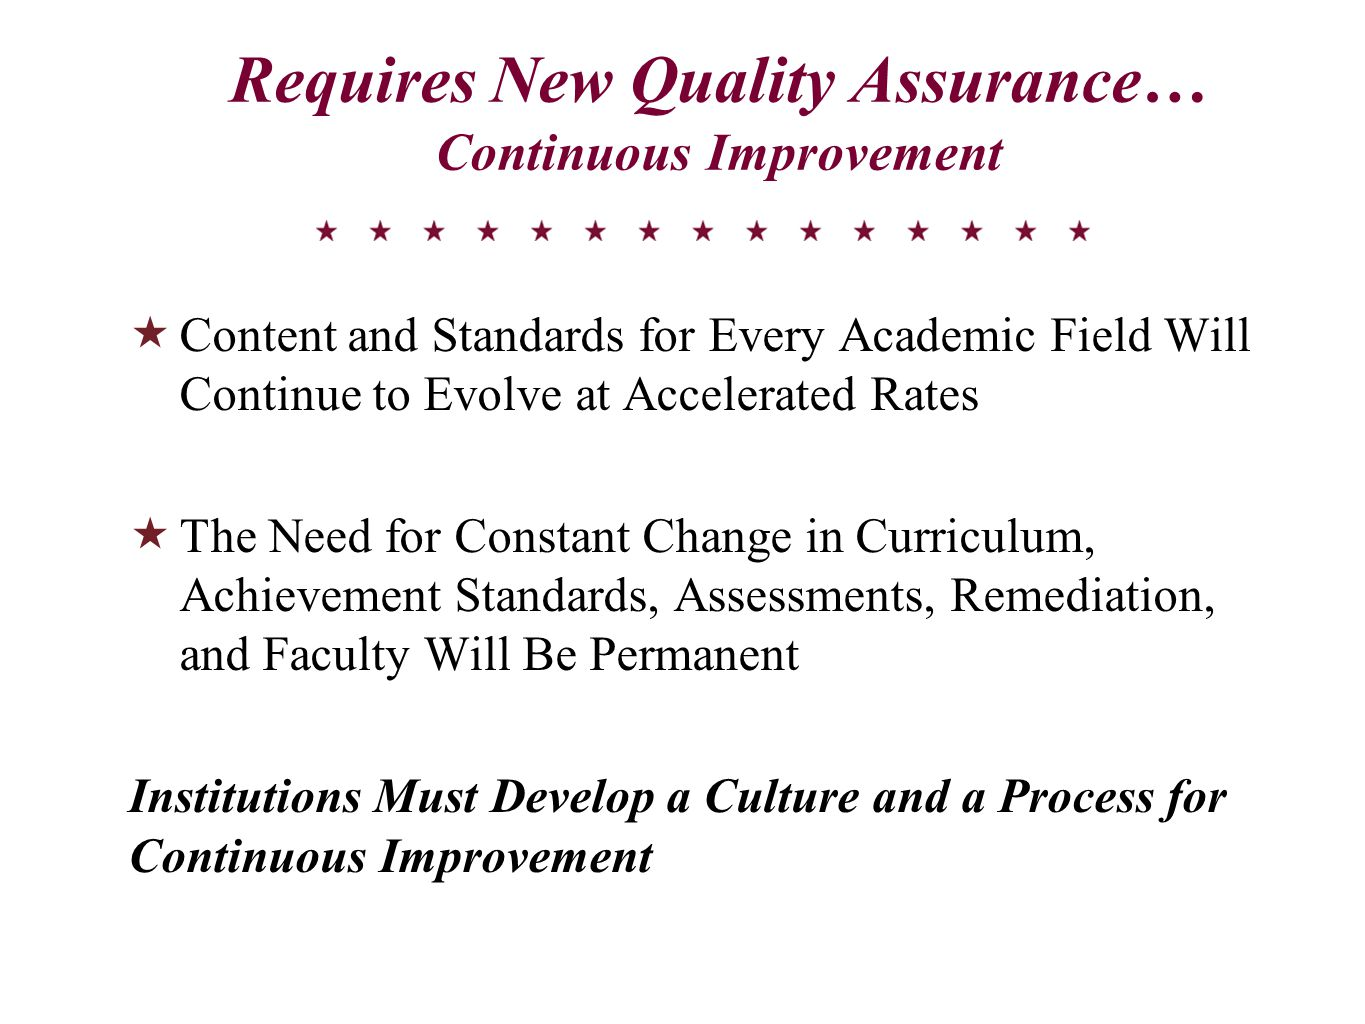 Requires New Quality Assurance… Continuous Improvement  Content and Standards for Every Academic Field Will Continue to Evolve at Accelerated Rates  The Need for Constant Change in Curriculum, Achievement Standards, Assessments, Remediation, and Faculty Will Be Permanent Institutions Must Develop a Culture and a Process for Continuous Improvement